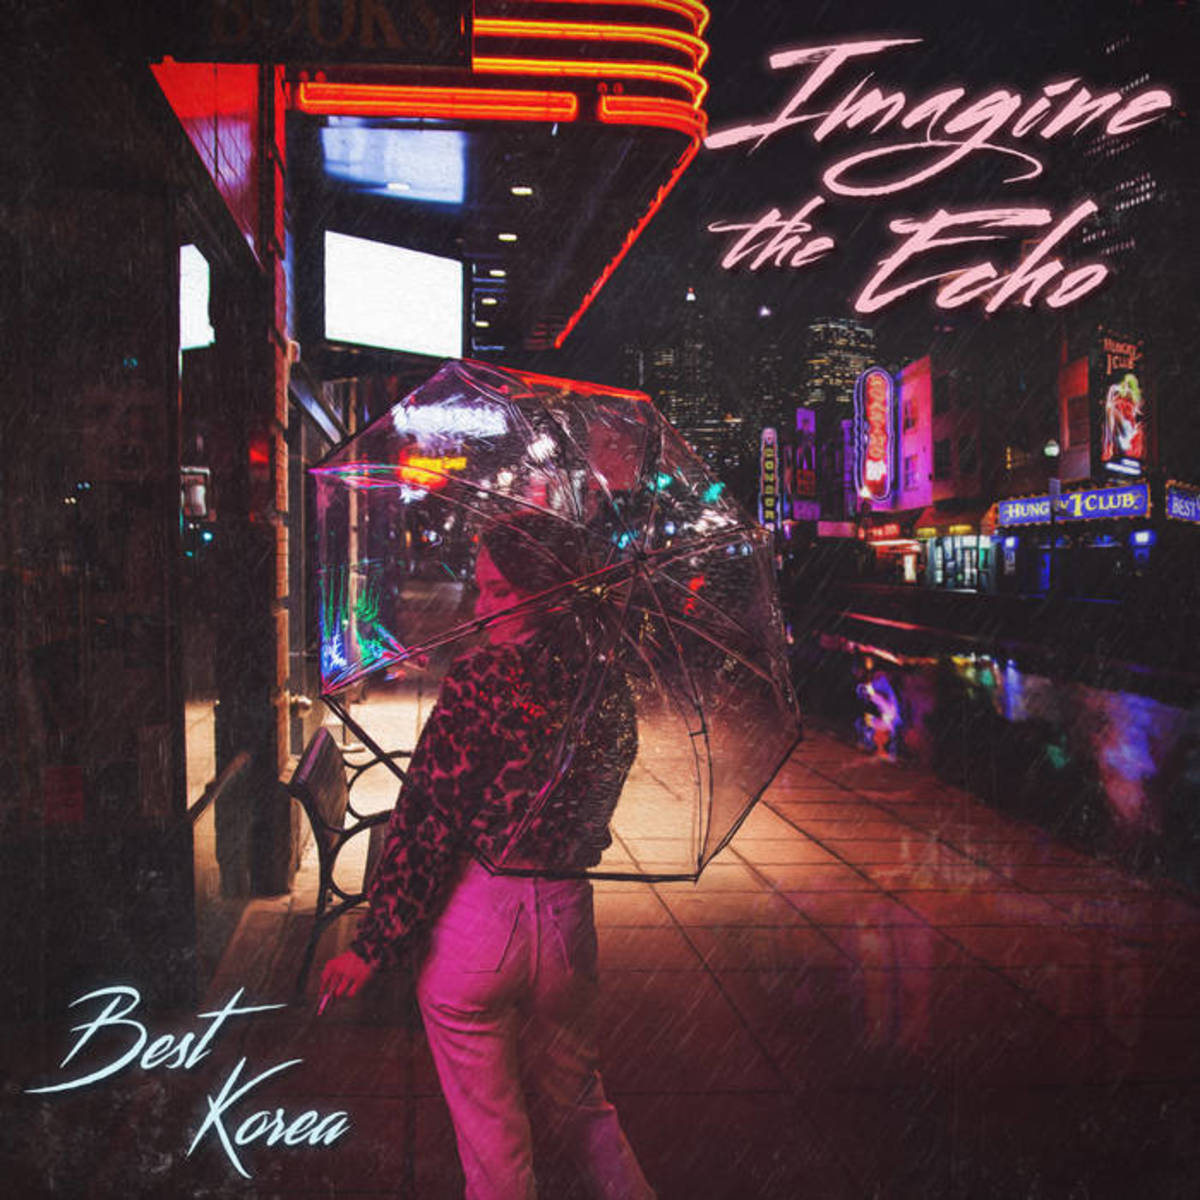 Synthwave Single Review: Best Korea,